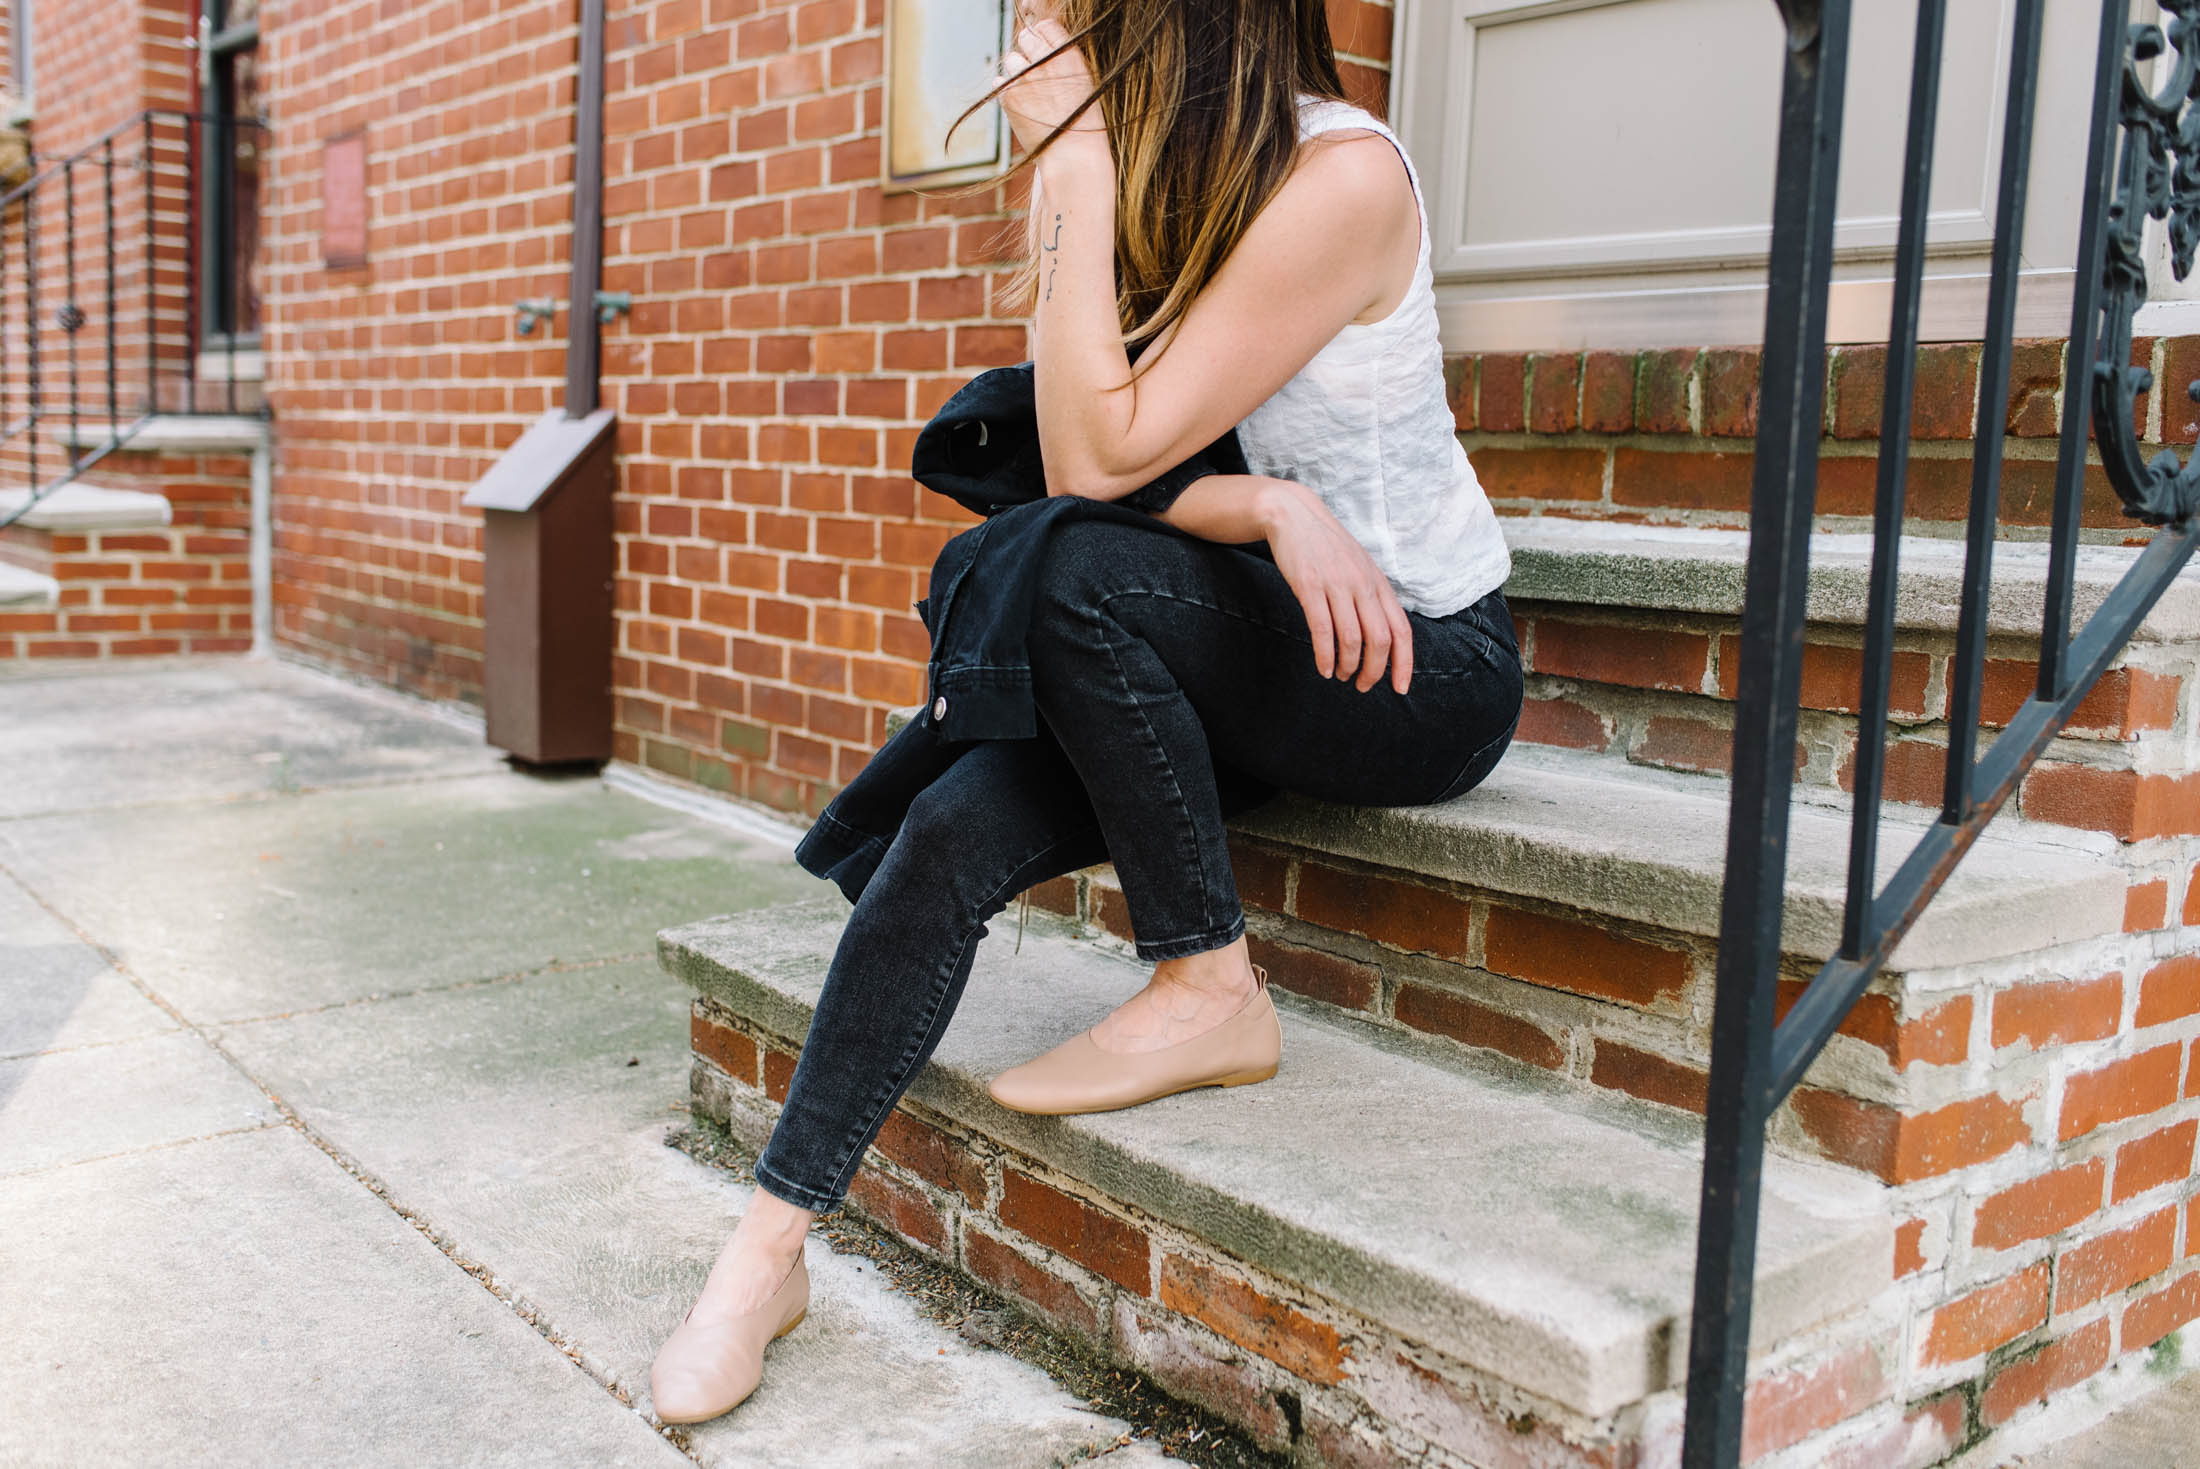 These Shoes: Everlane Day Glove Flats